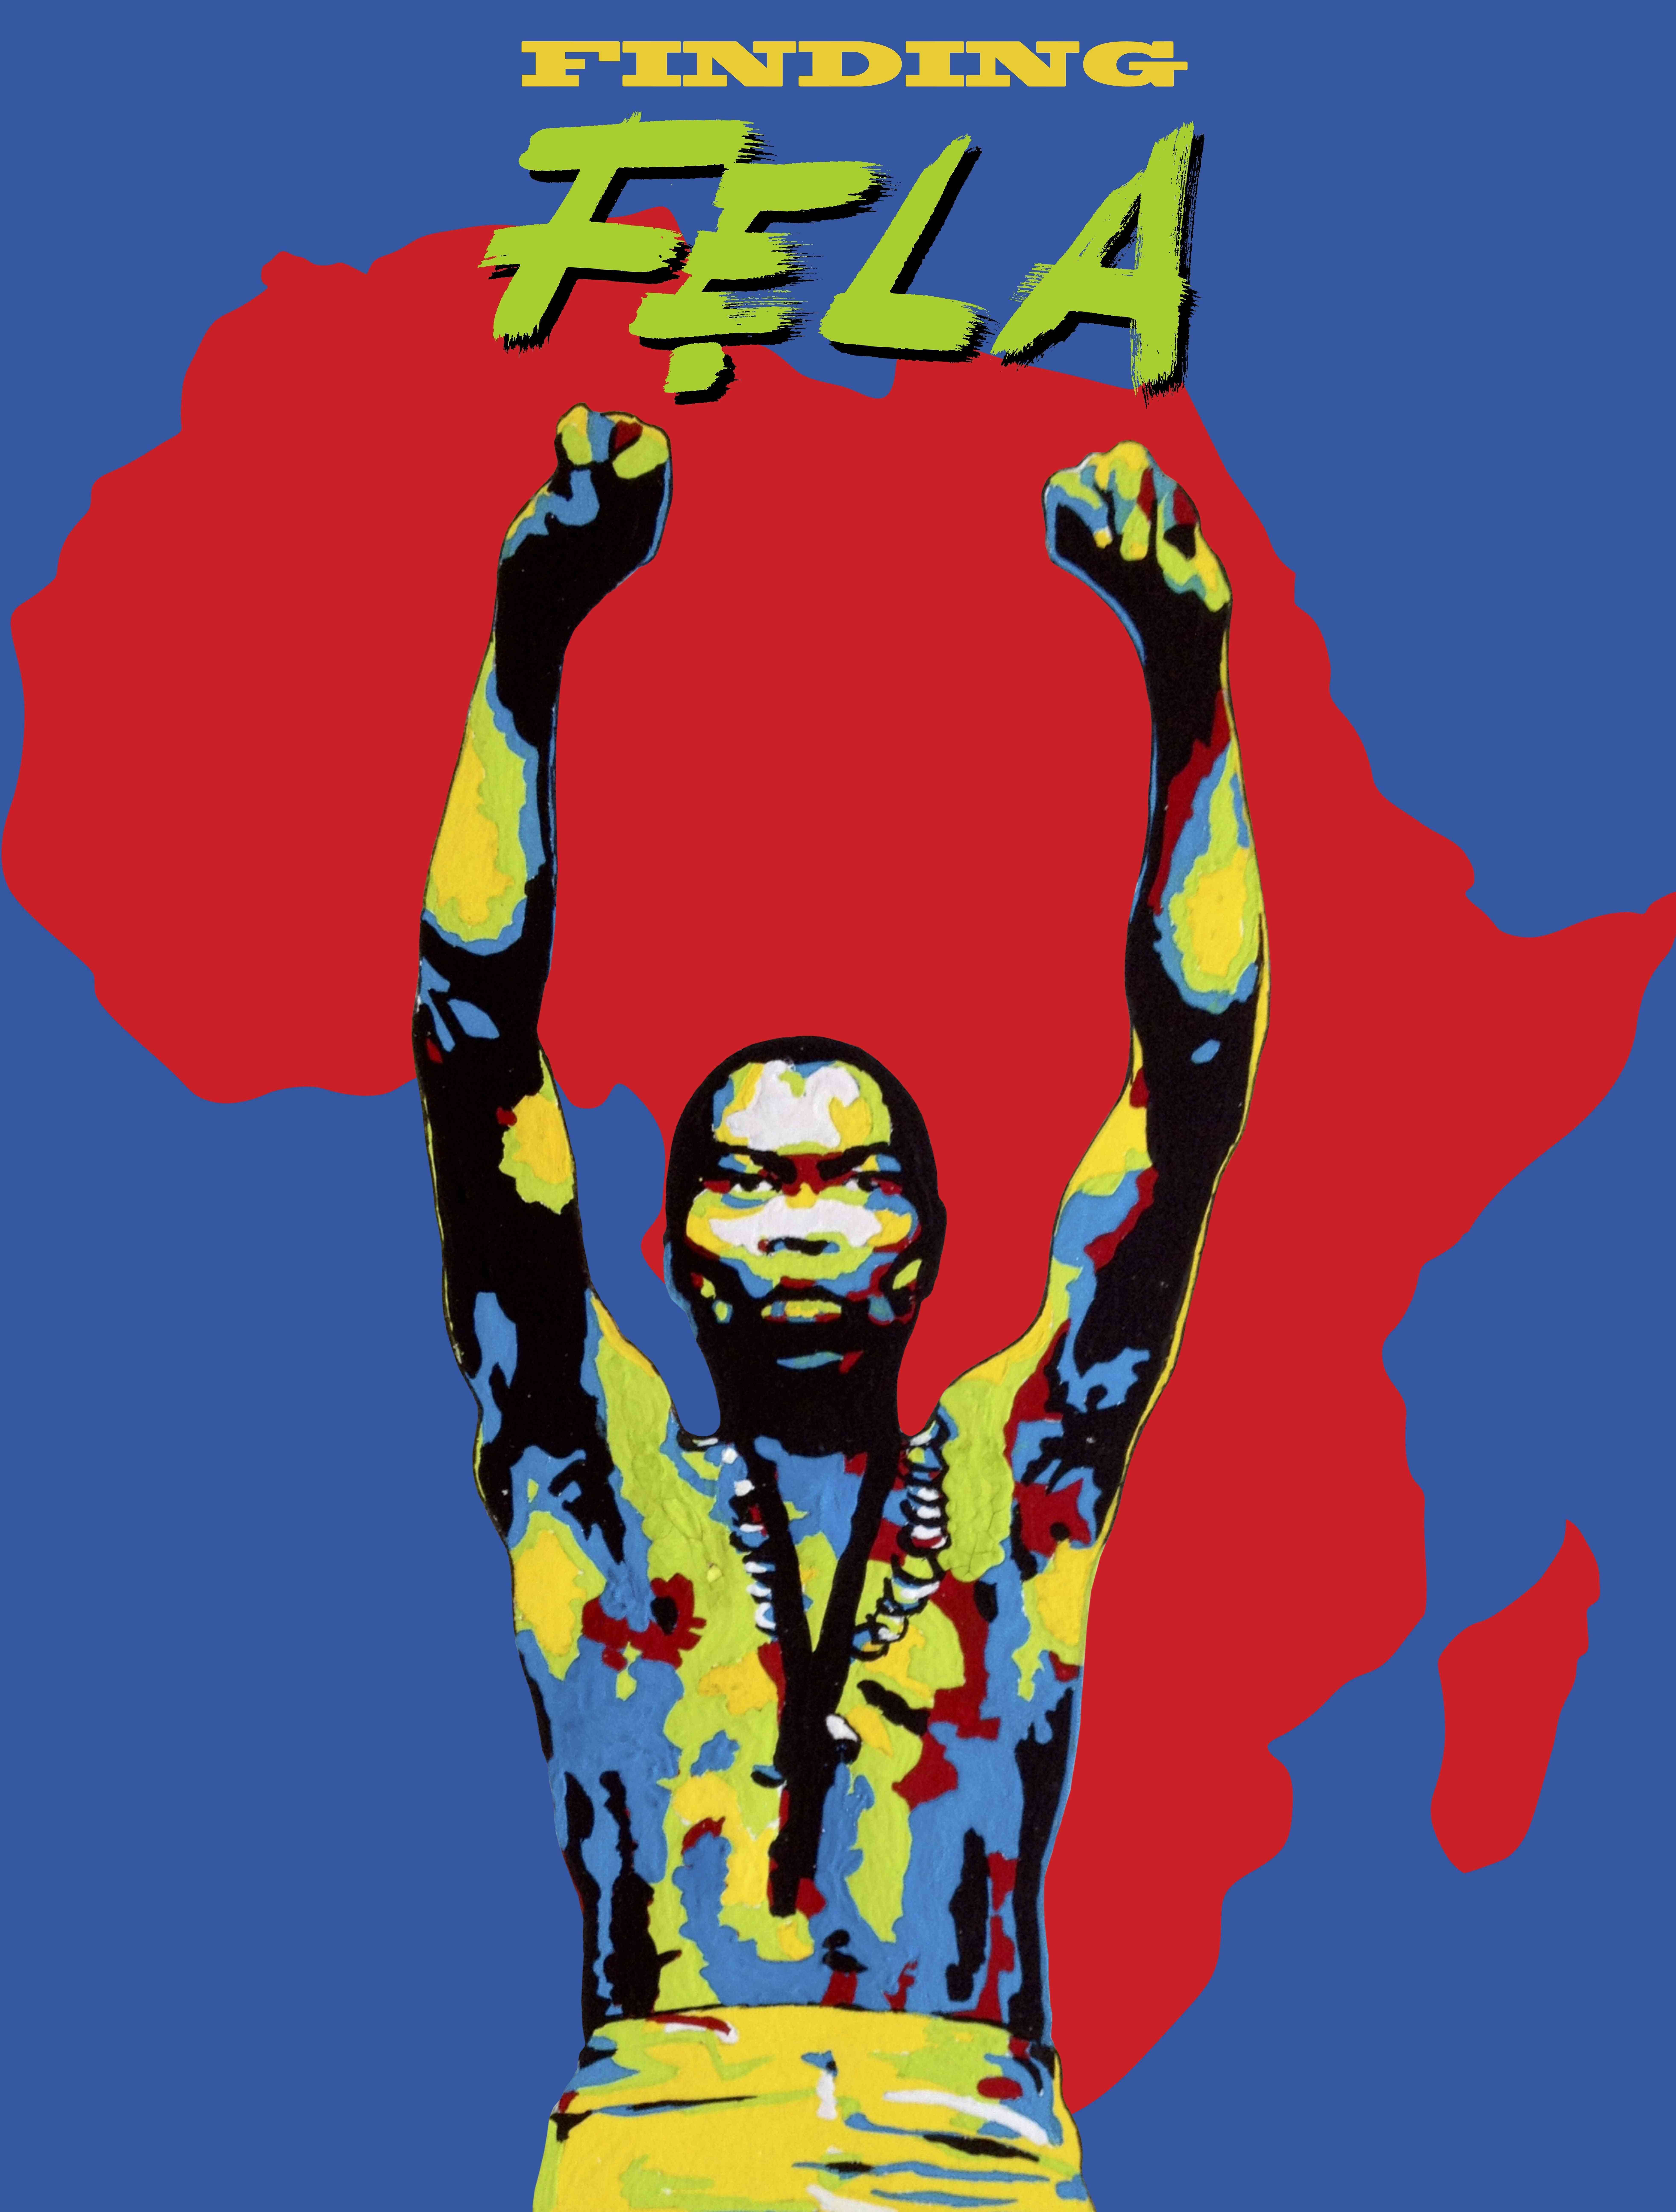 """, Director Alex Gibney Discusses Documentary """"Finding Fela"""", Life+Times"""